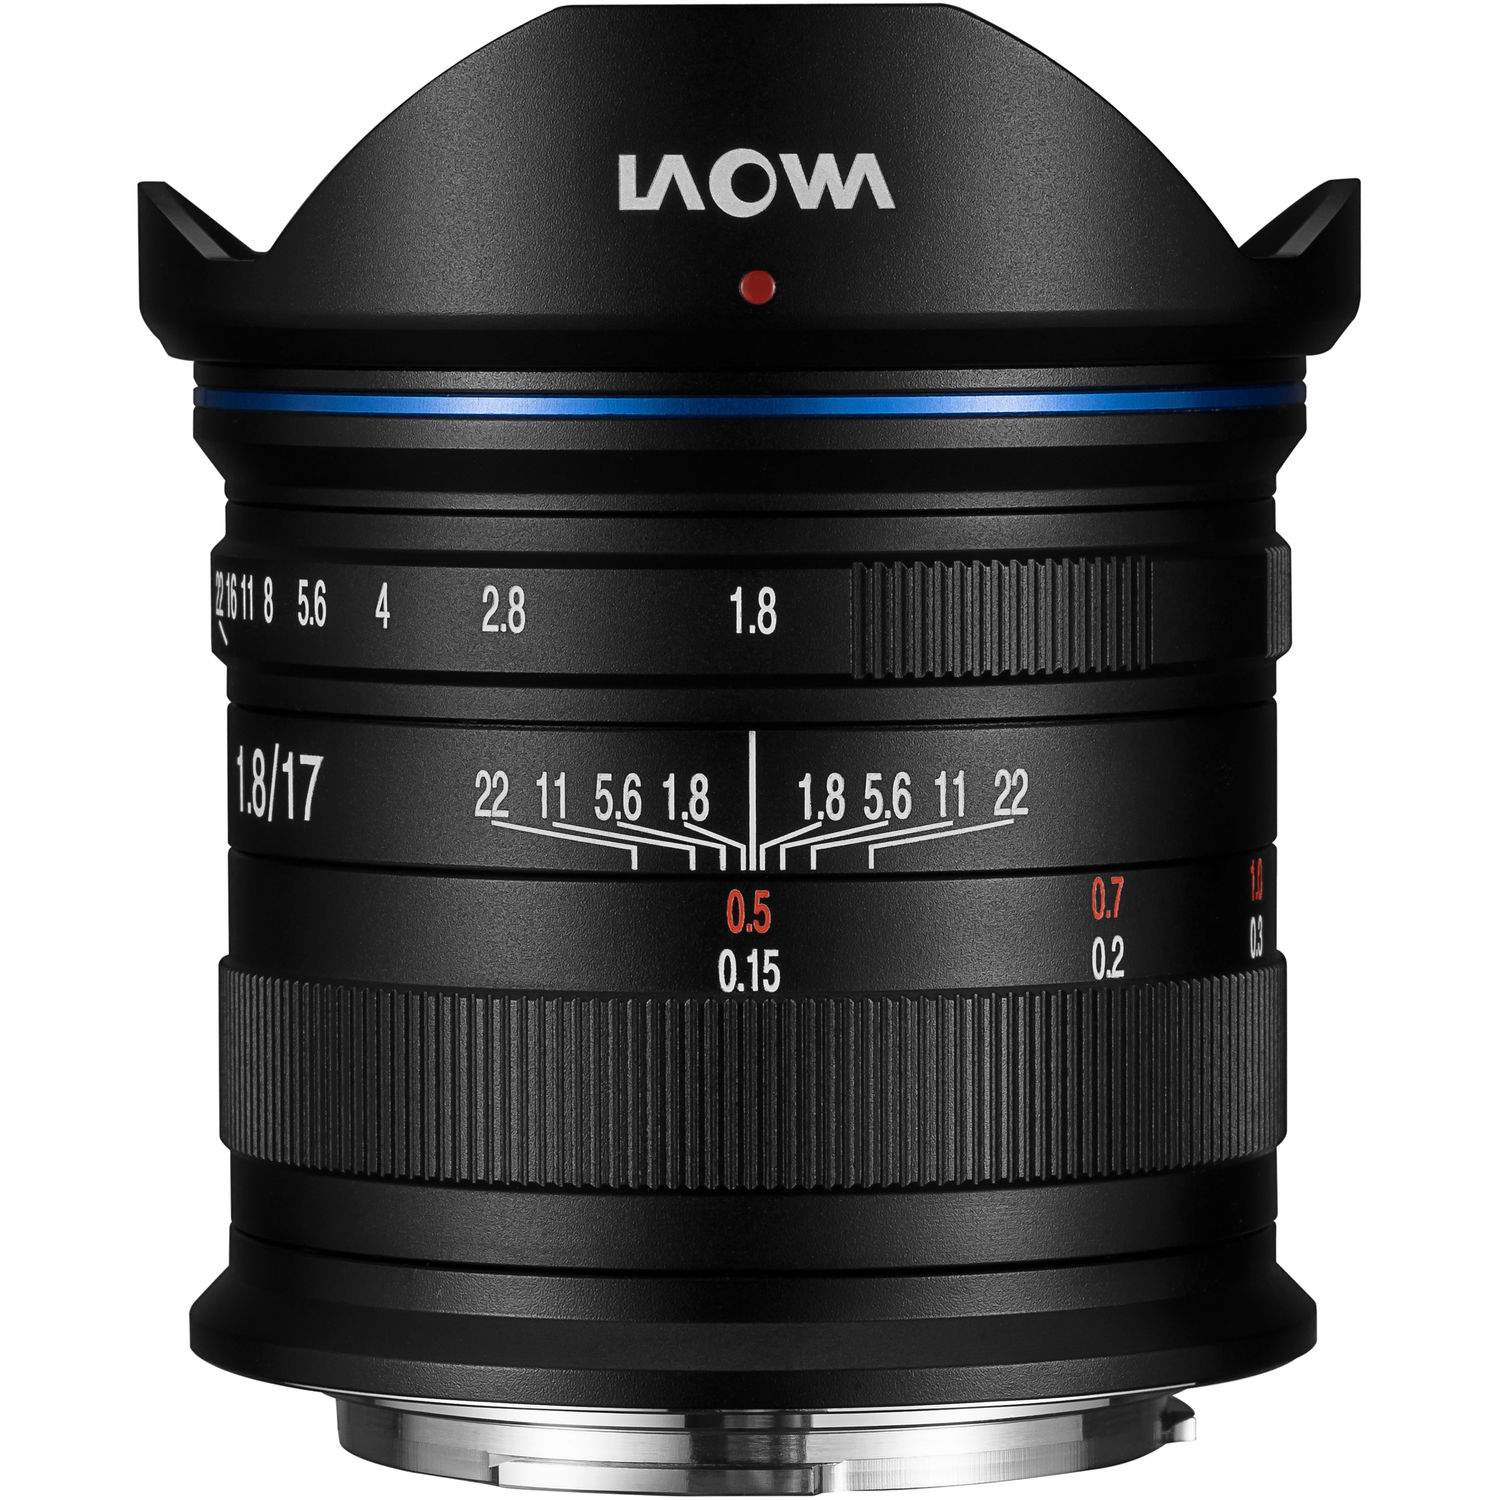 Venus Optics Laowa 17mm f/1.8 MFT Lens for Micro Four Thirds